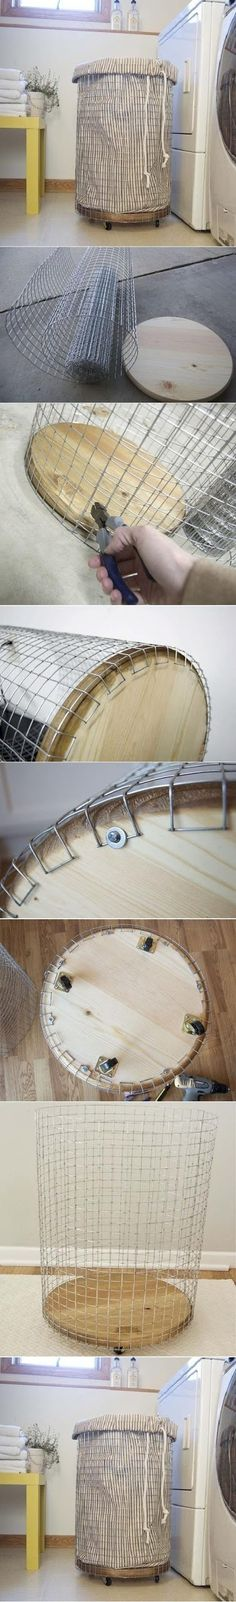 How to make a French-Vintage-Inspired Wire Hamper -